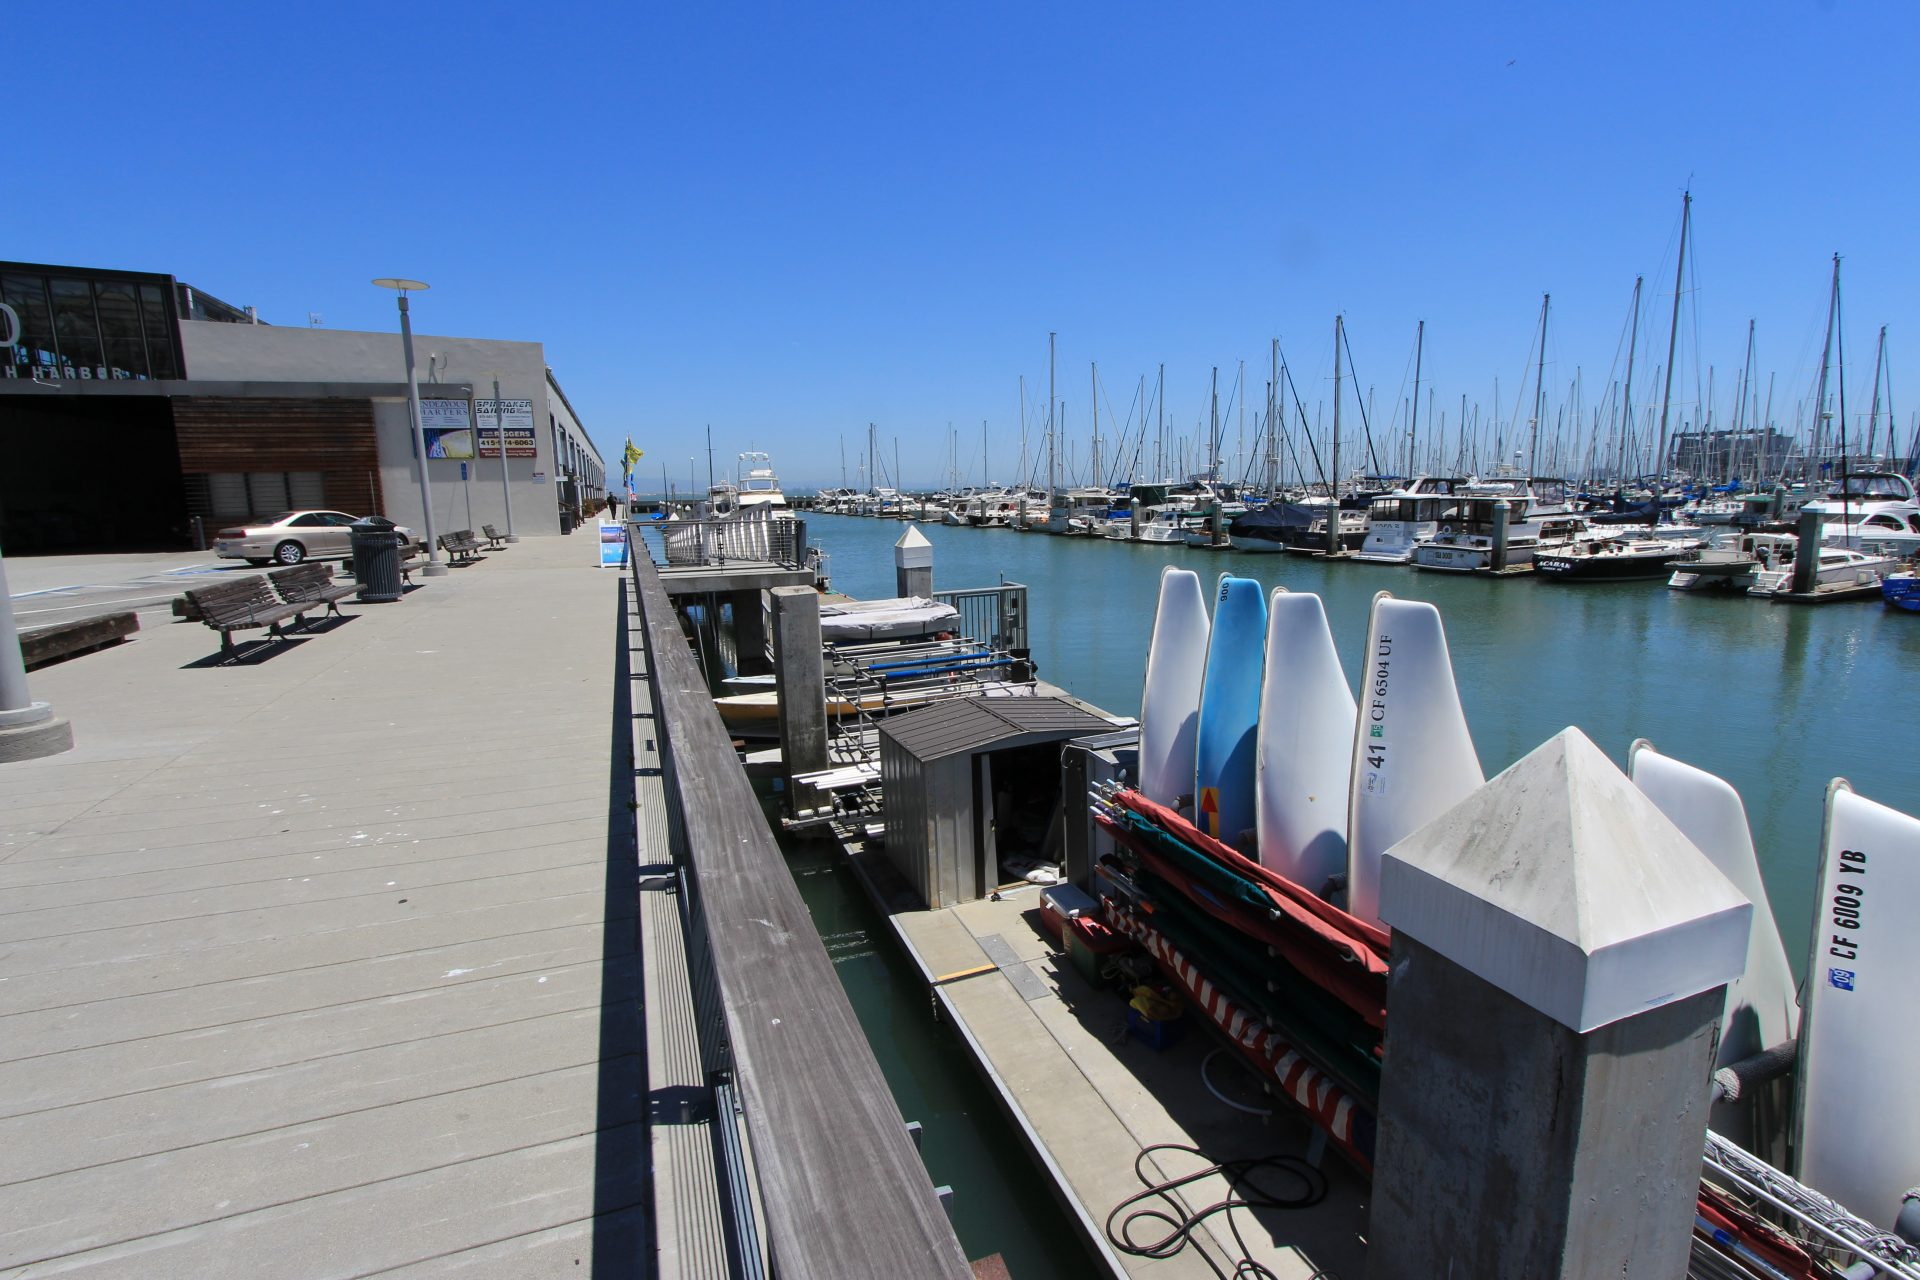 Wide boardwalk on left, dock below on right with small sailboats lined up vertically in storage